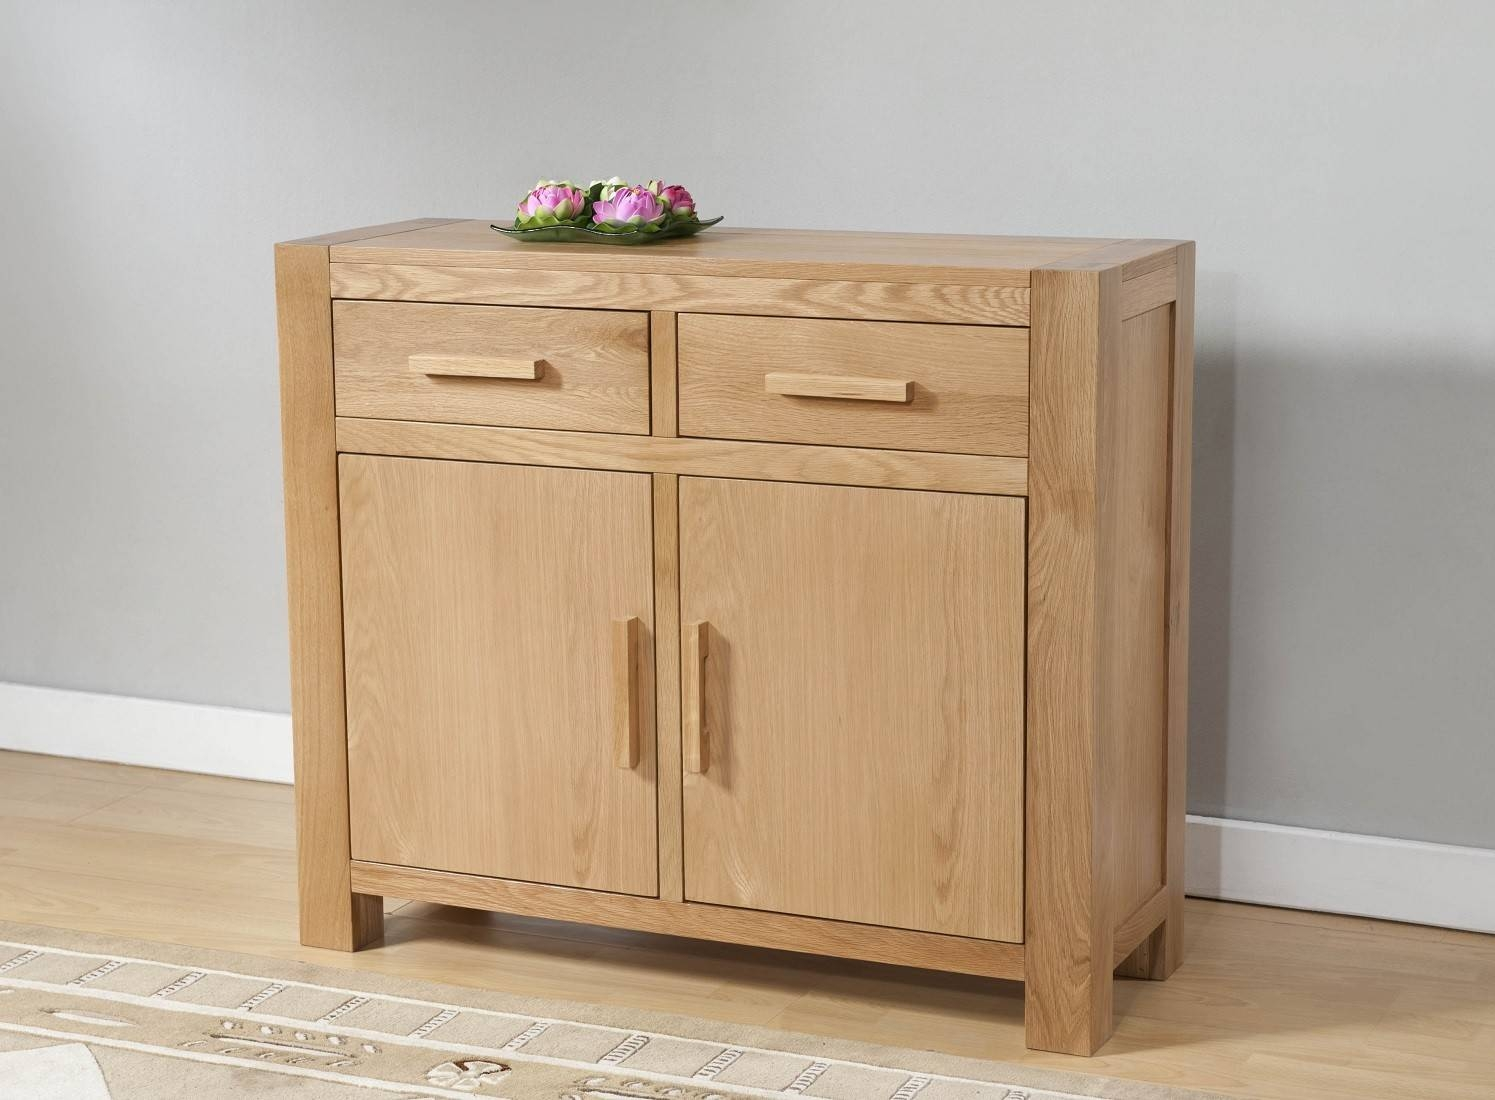 Aylesbury Contemporary Light Oak Small Sideboard | Oak Furniture Uk With Regard To Most Up To Date Small Oak Sideboards (#2 of 15)